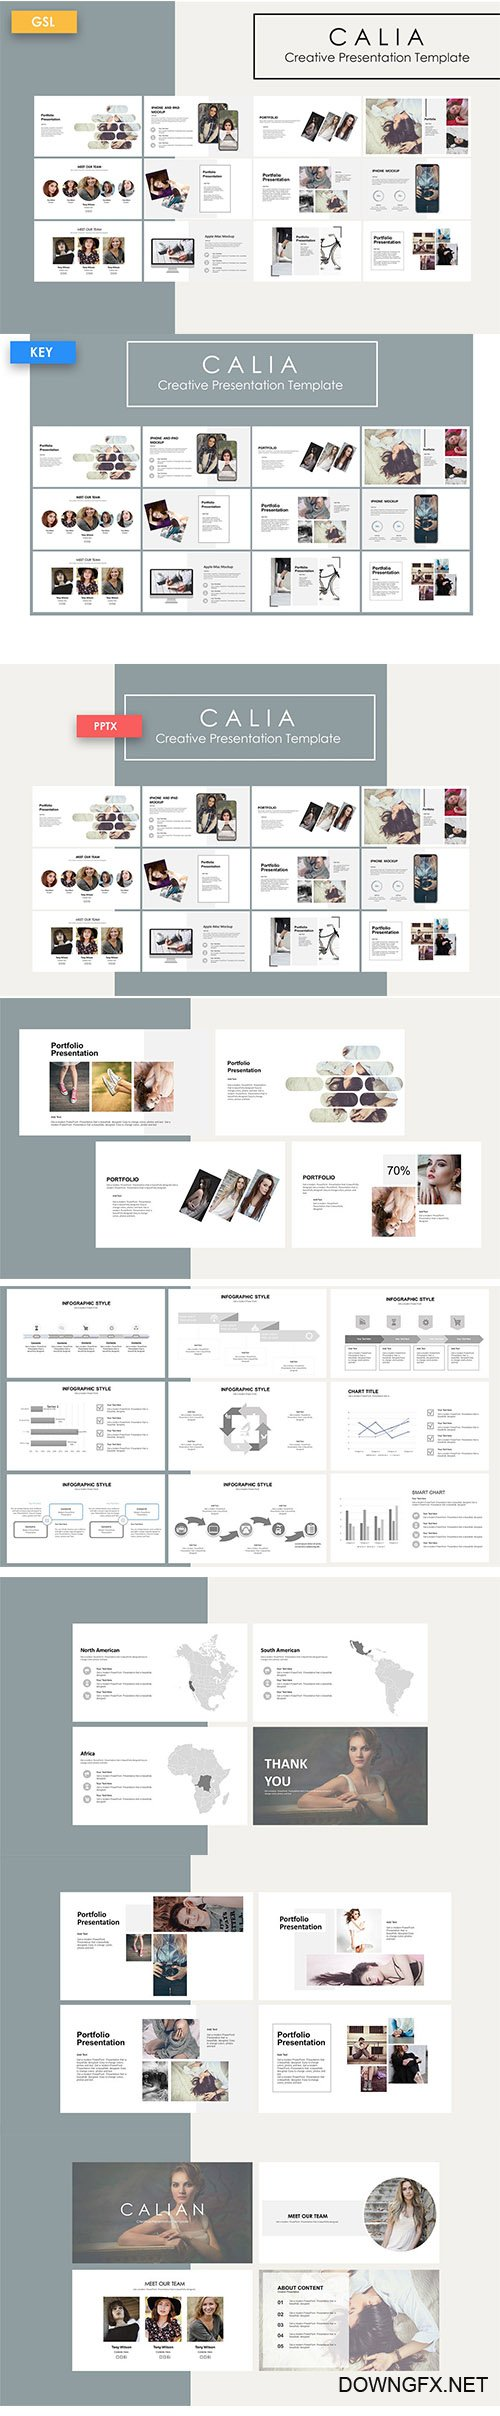 Calia - Powerpoint Template, Keynote and Google Slide Template